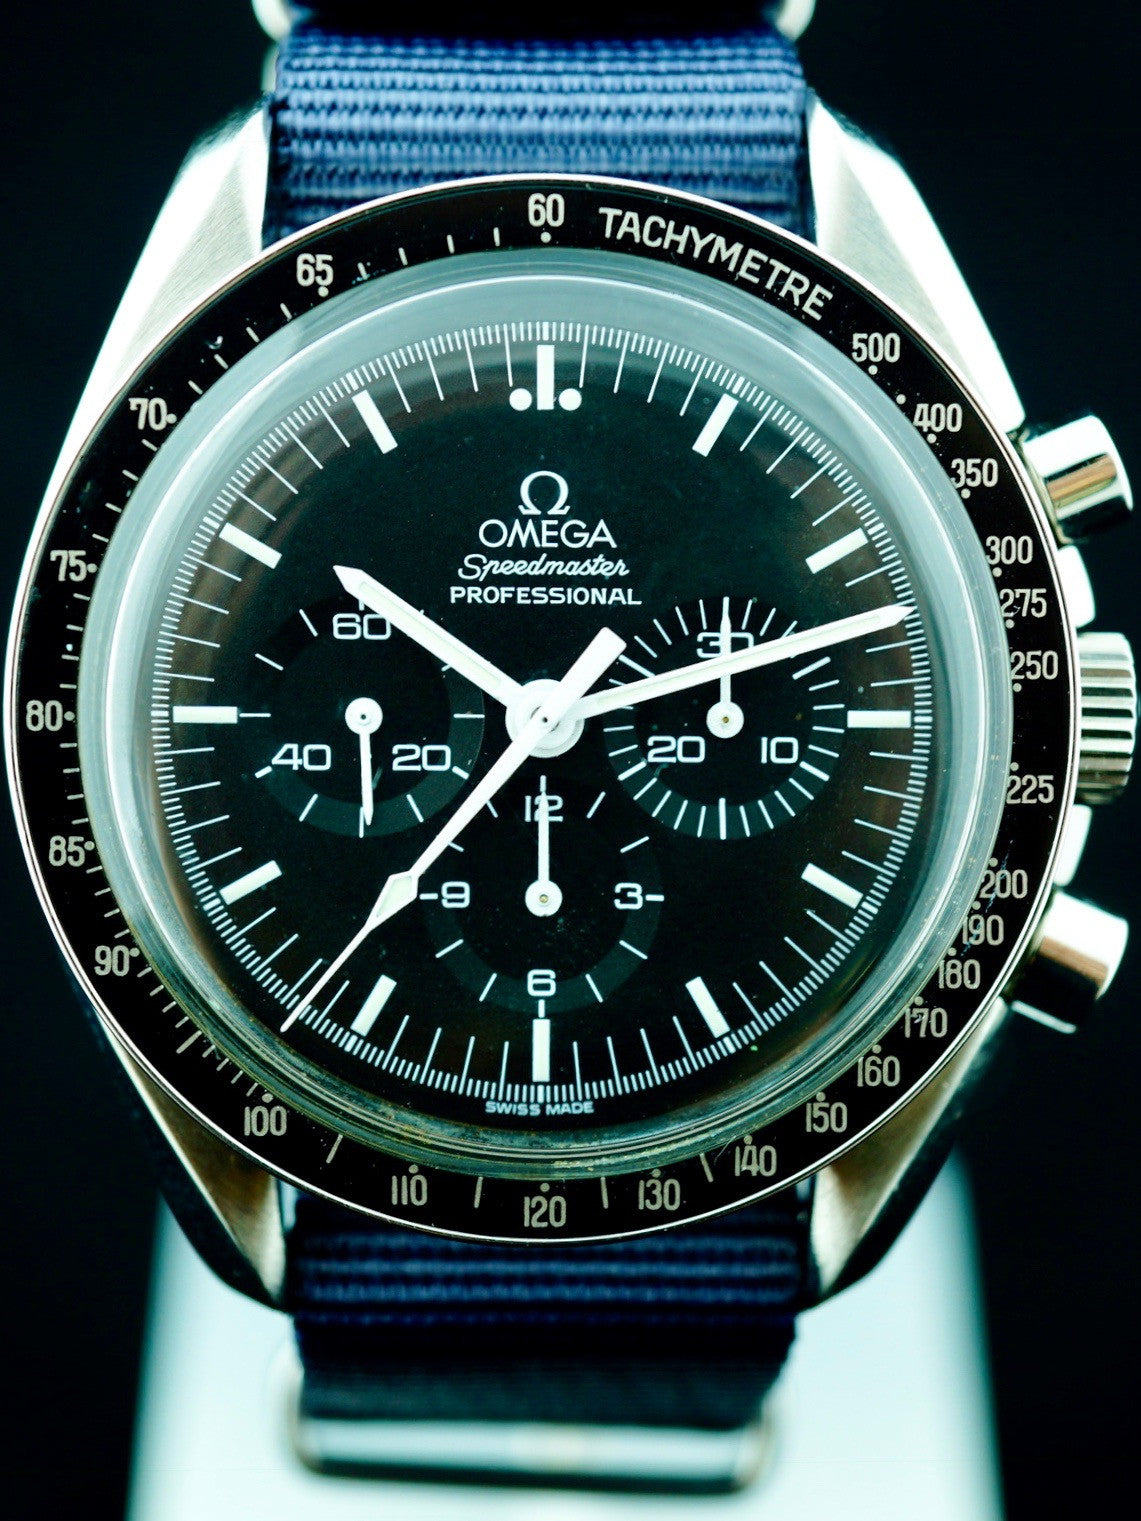 "1973 Omega Speedmaster 145.022 CALIBRE 861 Rare Straight Writing ""Moon Watch"" Case Back"